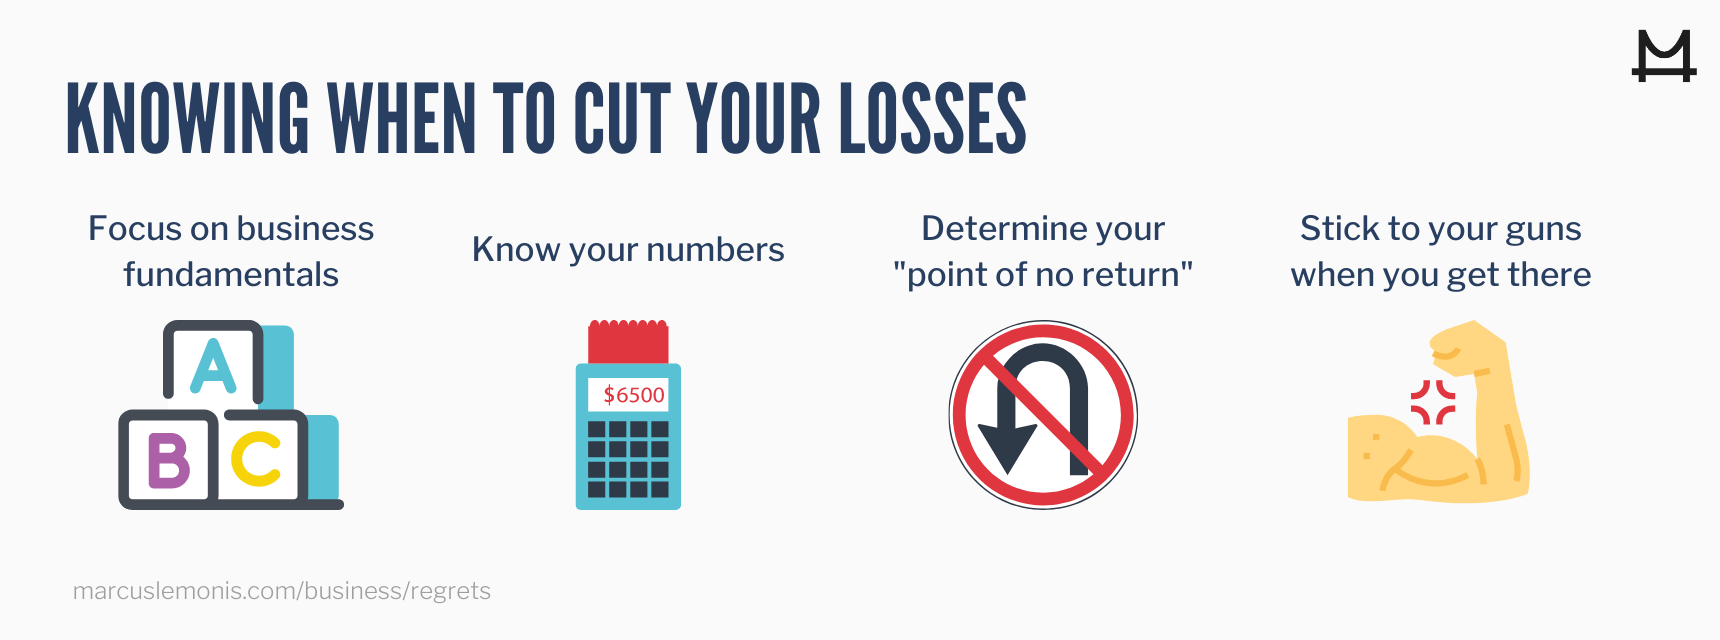 Four ways to determine when to cut your losses